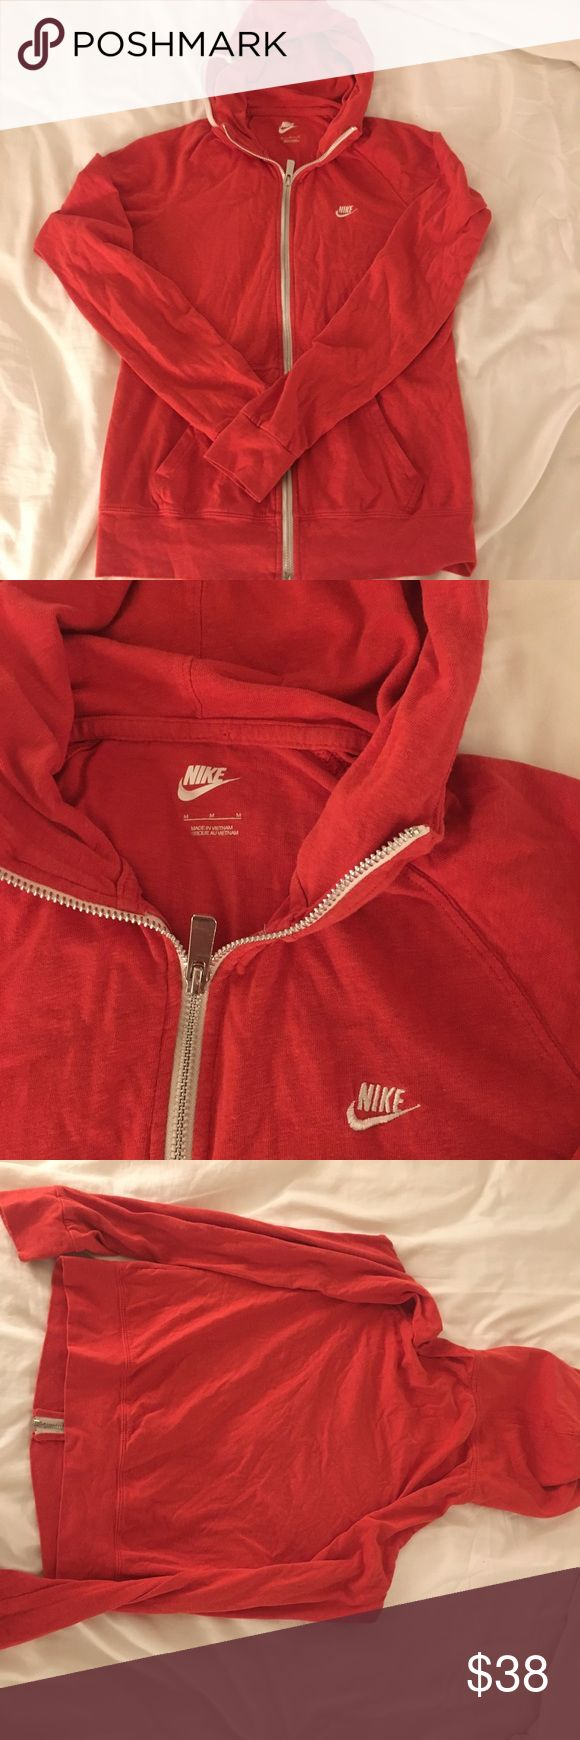 Red Nike Jacket Brand new condition. I will ship right away. Nike Jackets & Coats